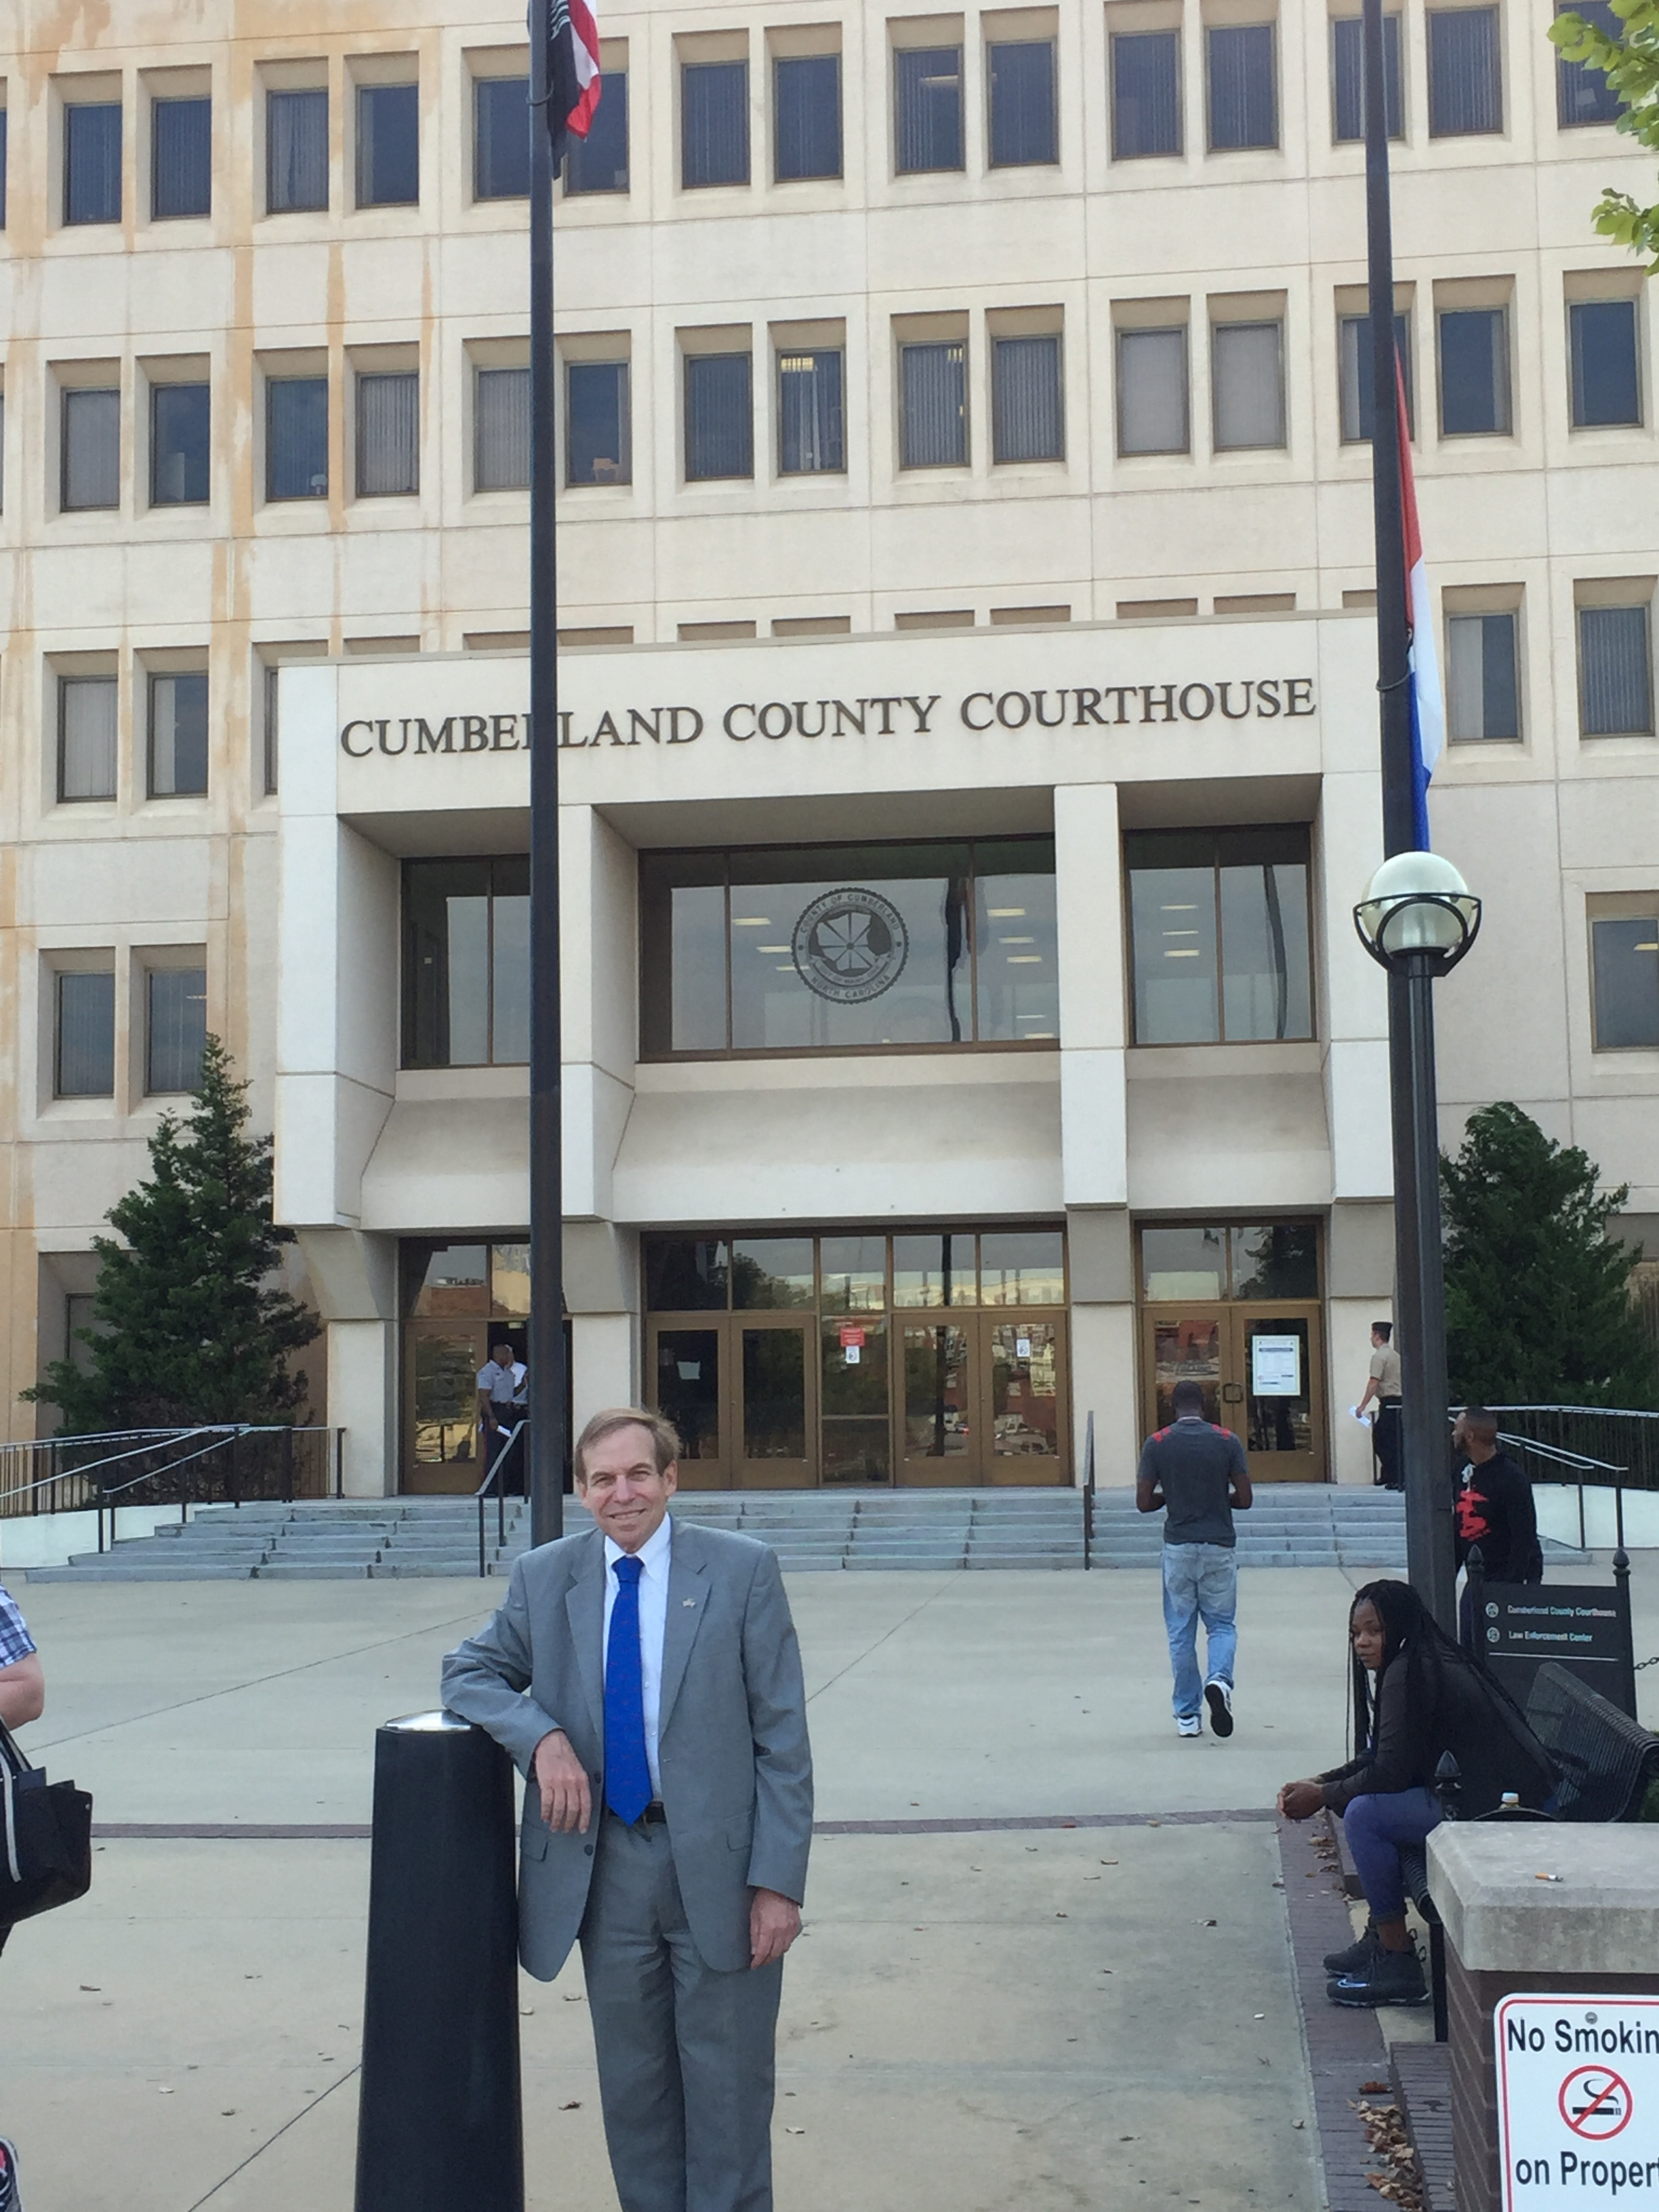 At the Cumberland County courthouse, October 3, 2016.